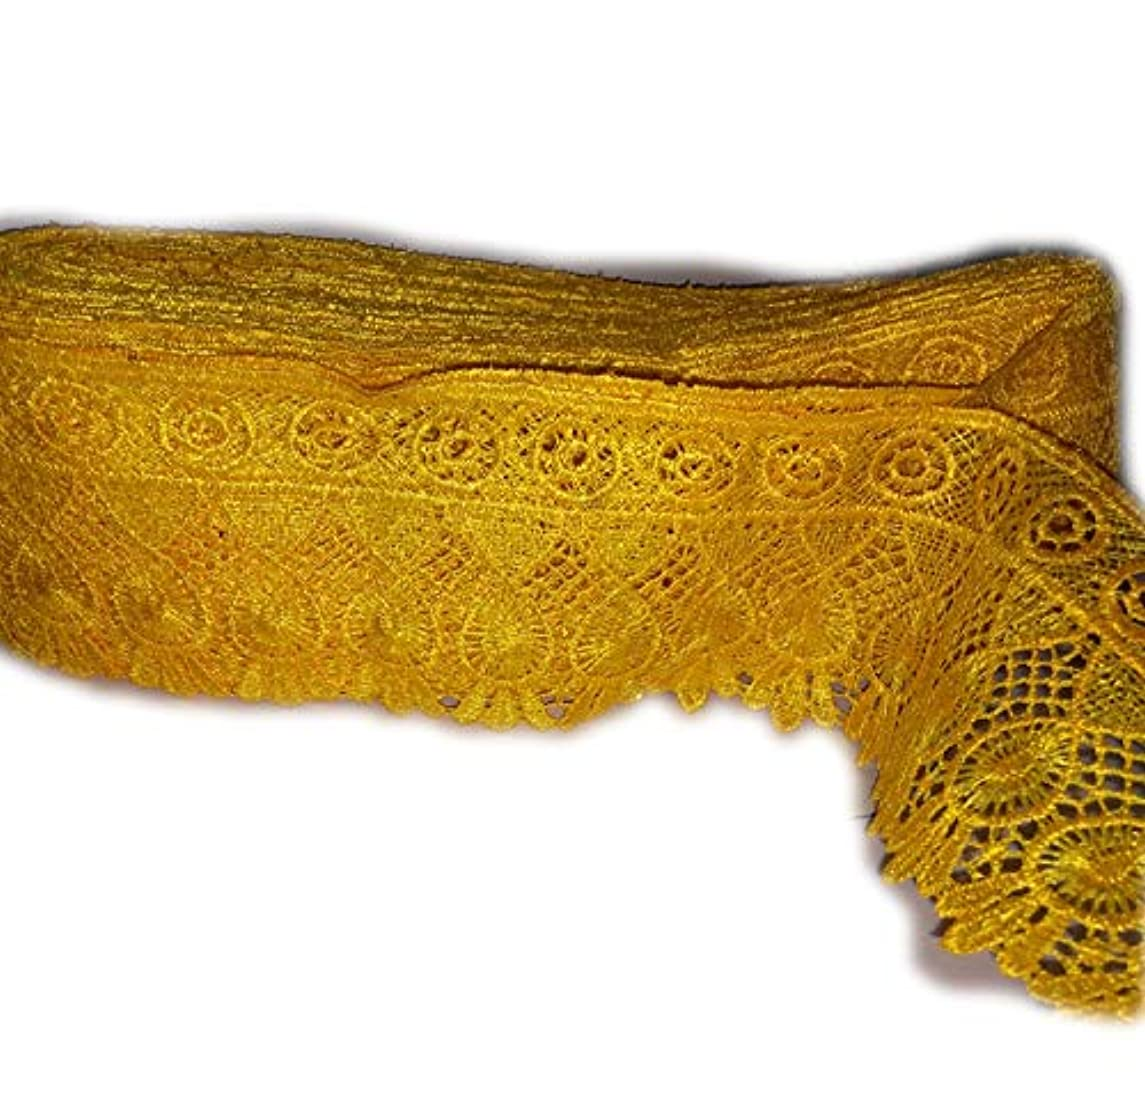 Yuktha Eternals 3 Inch Yellow Lace Ribbon Floral Lace Trim for Decoration, Wedding Cards, Invitation, Hair, Bow, Gift Wrapping - 17.5 Yards x 3